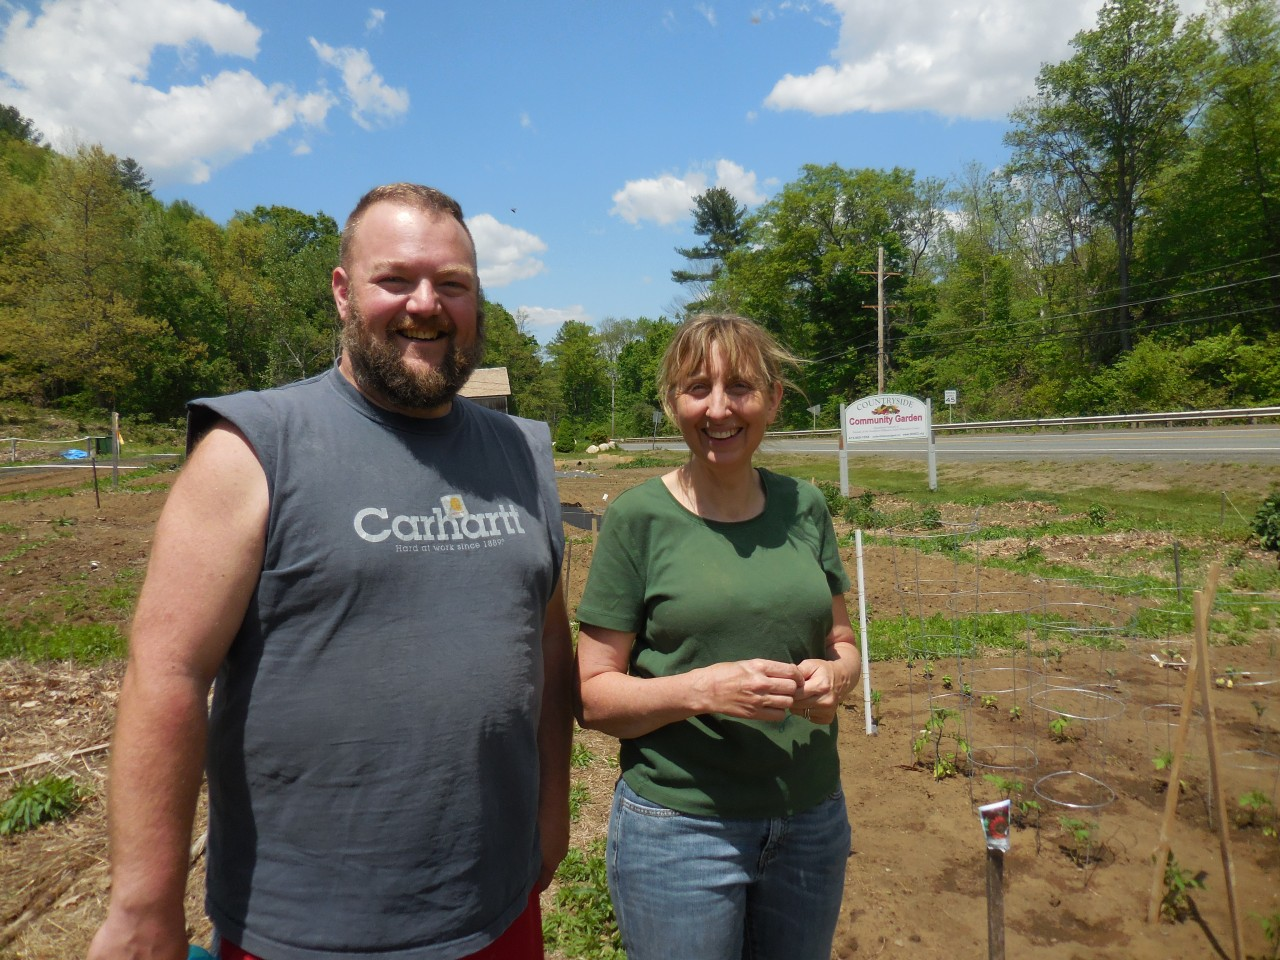 Bryan Farr and Michele Kenney of the Countryside Community Garden in Russell. (Photo by Amy Porter)